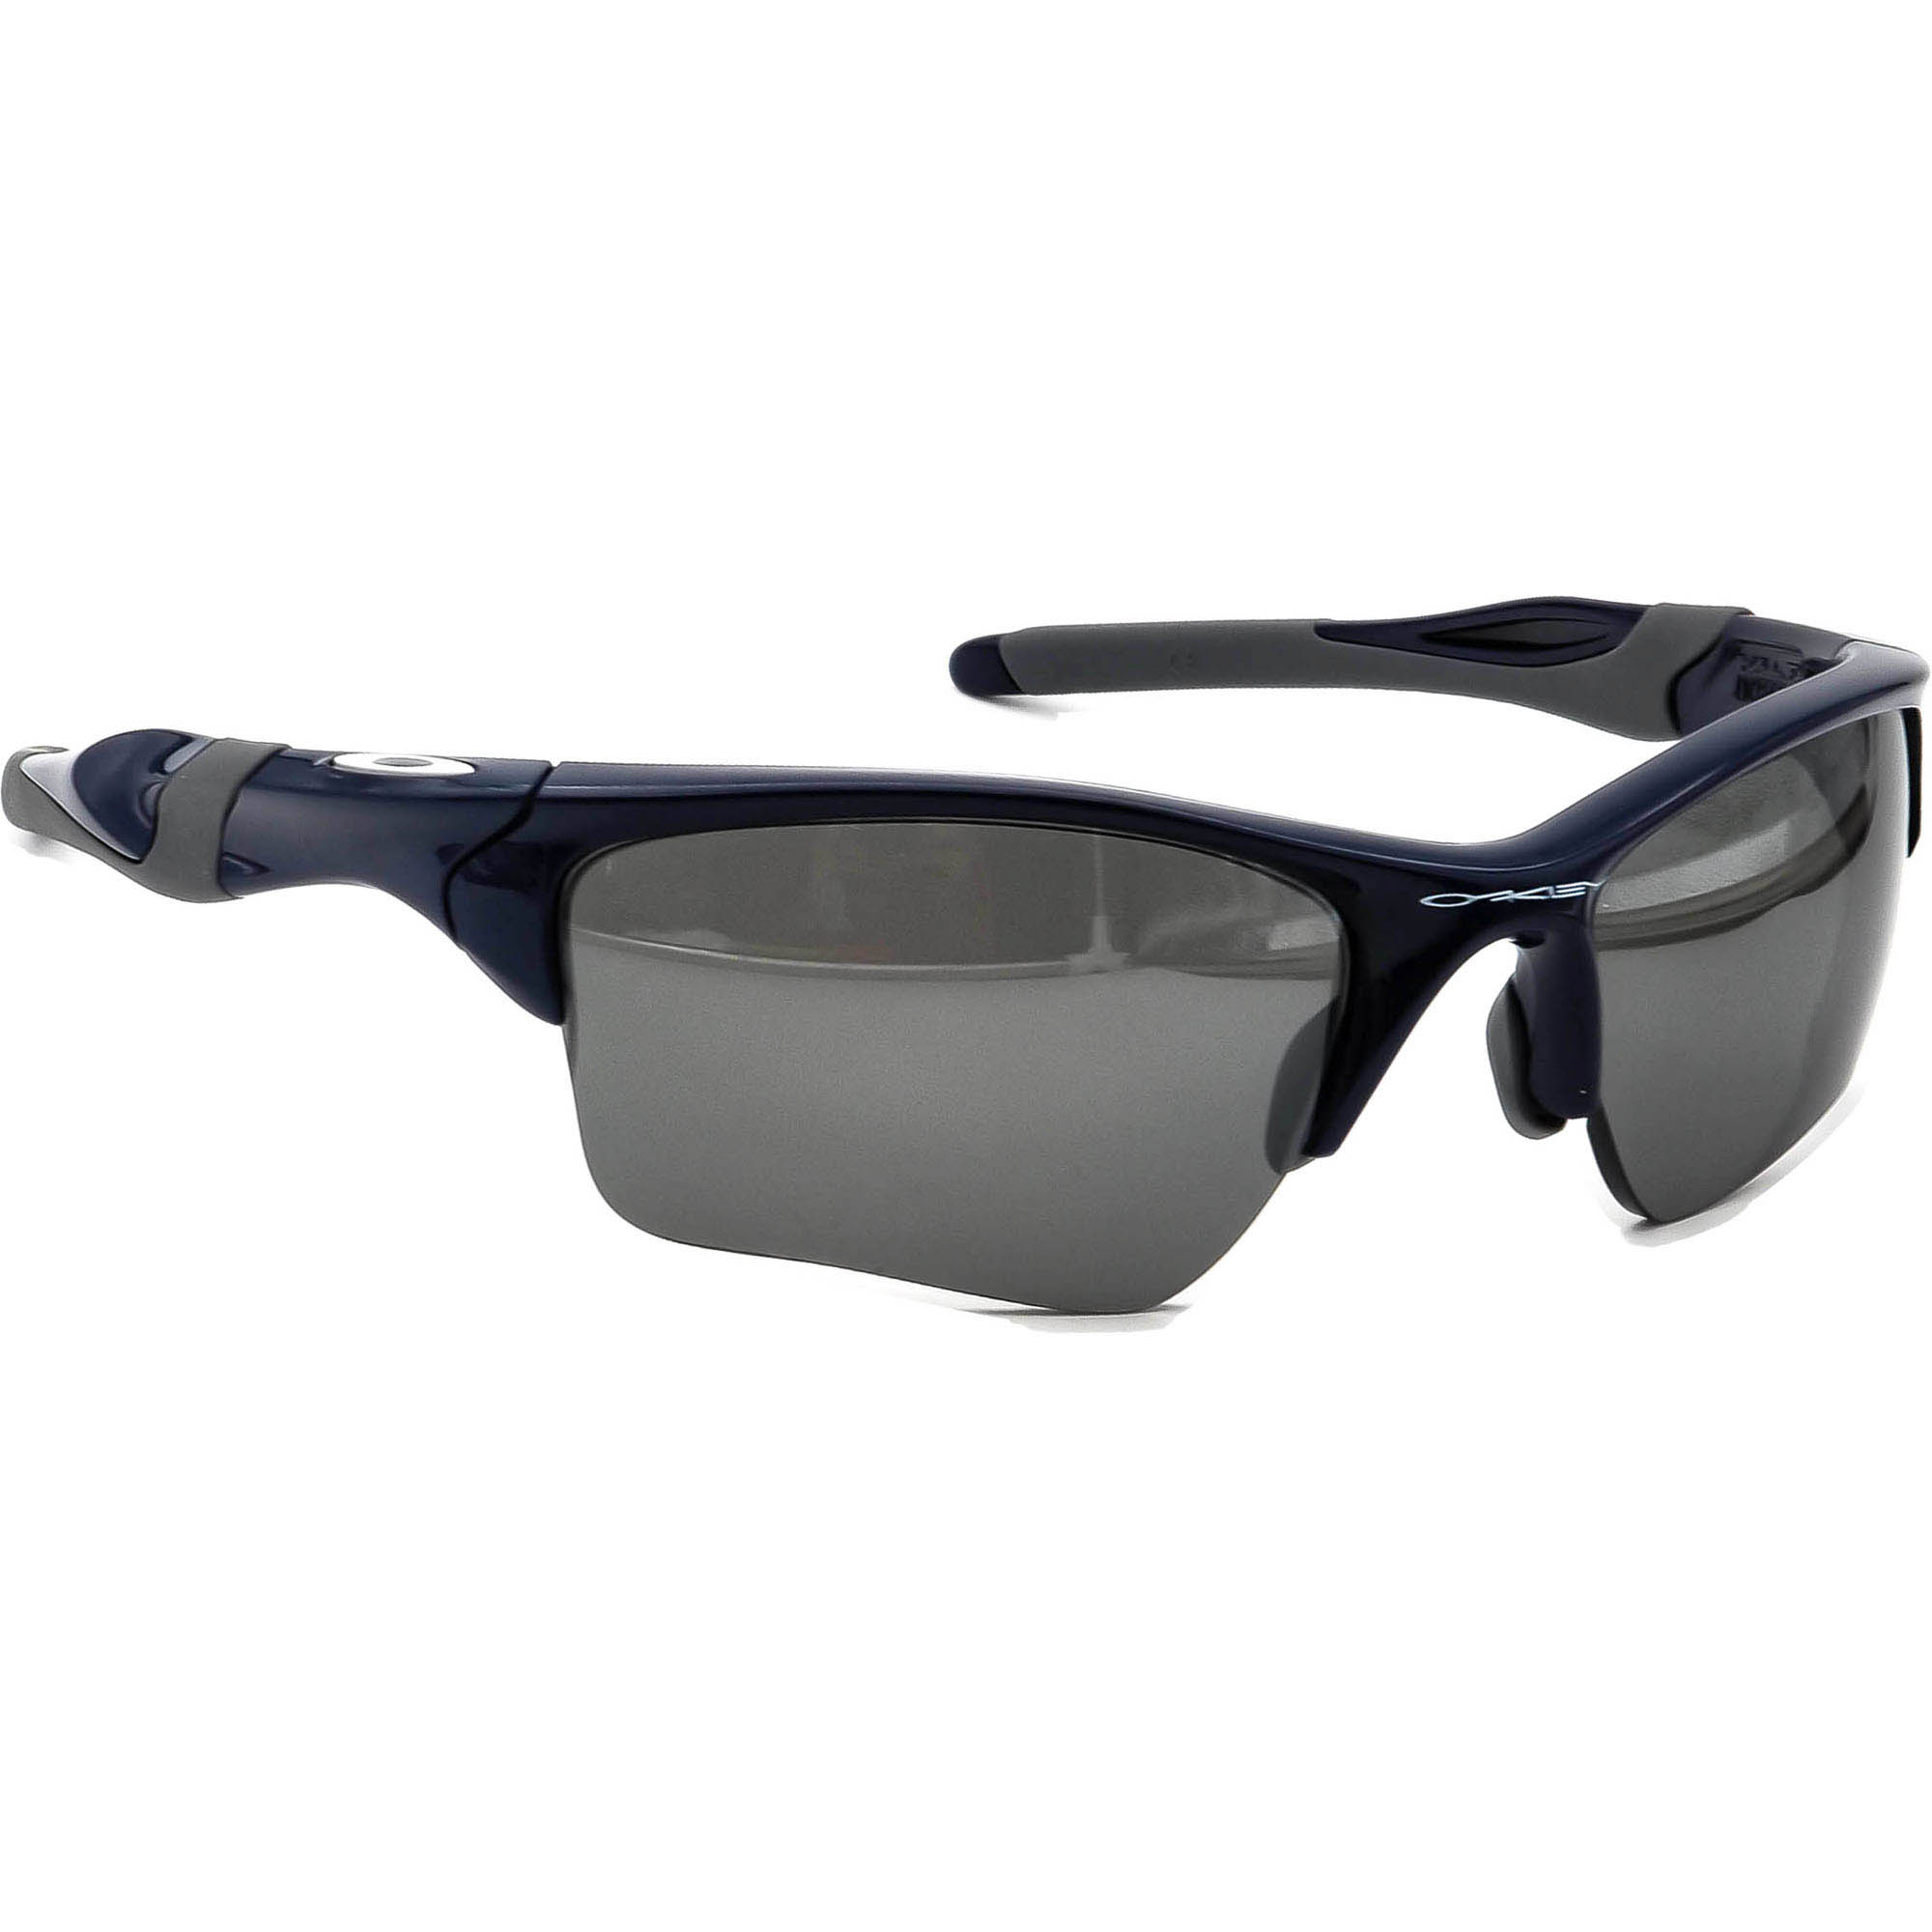 Oakley Half Jacket 2.0 Sunglasses Frame Only